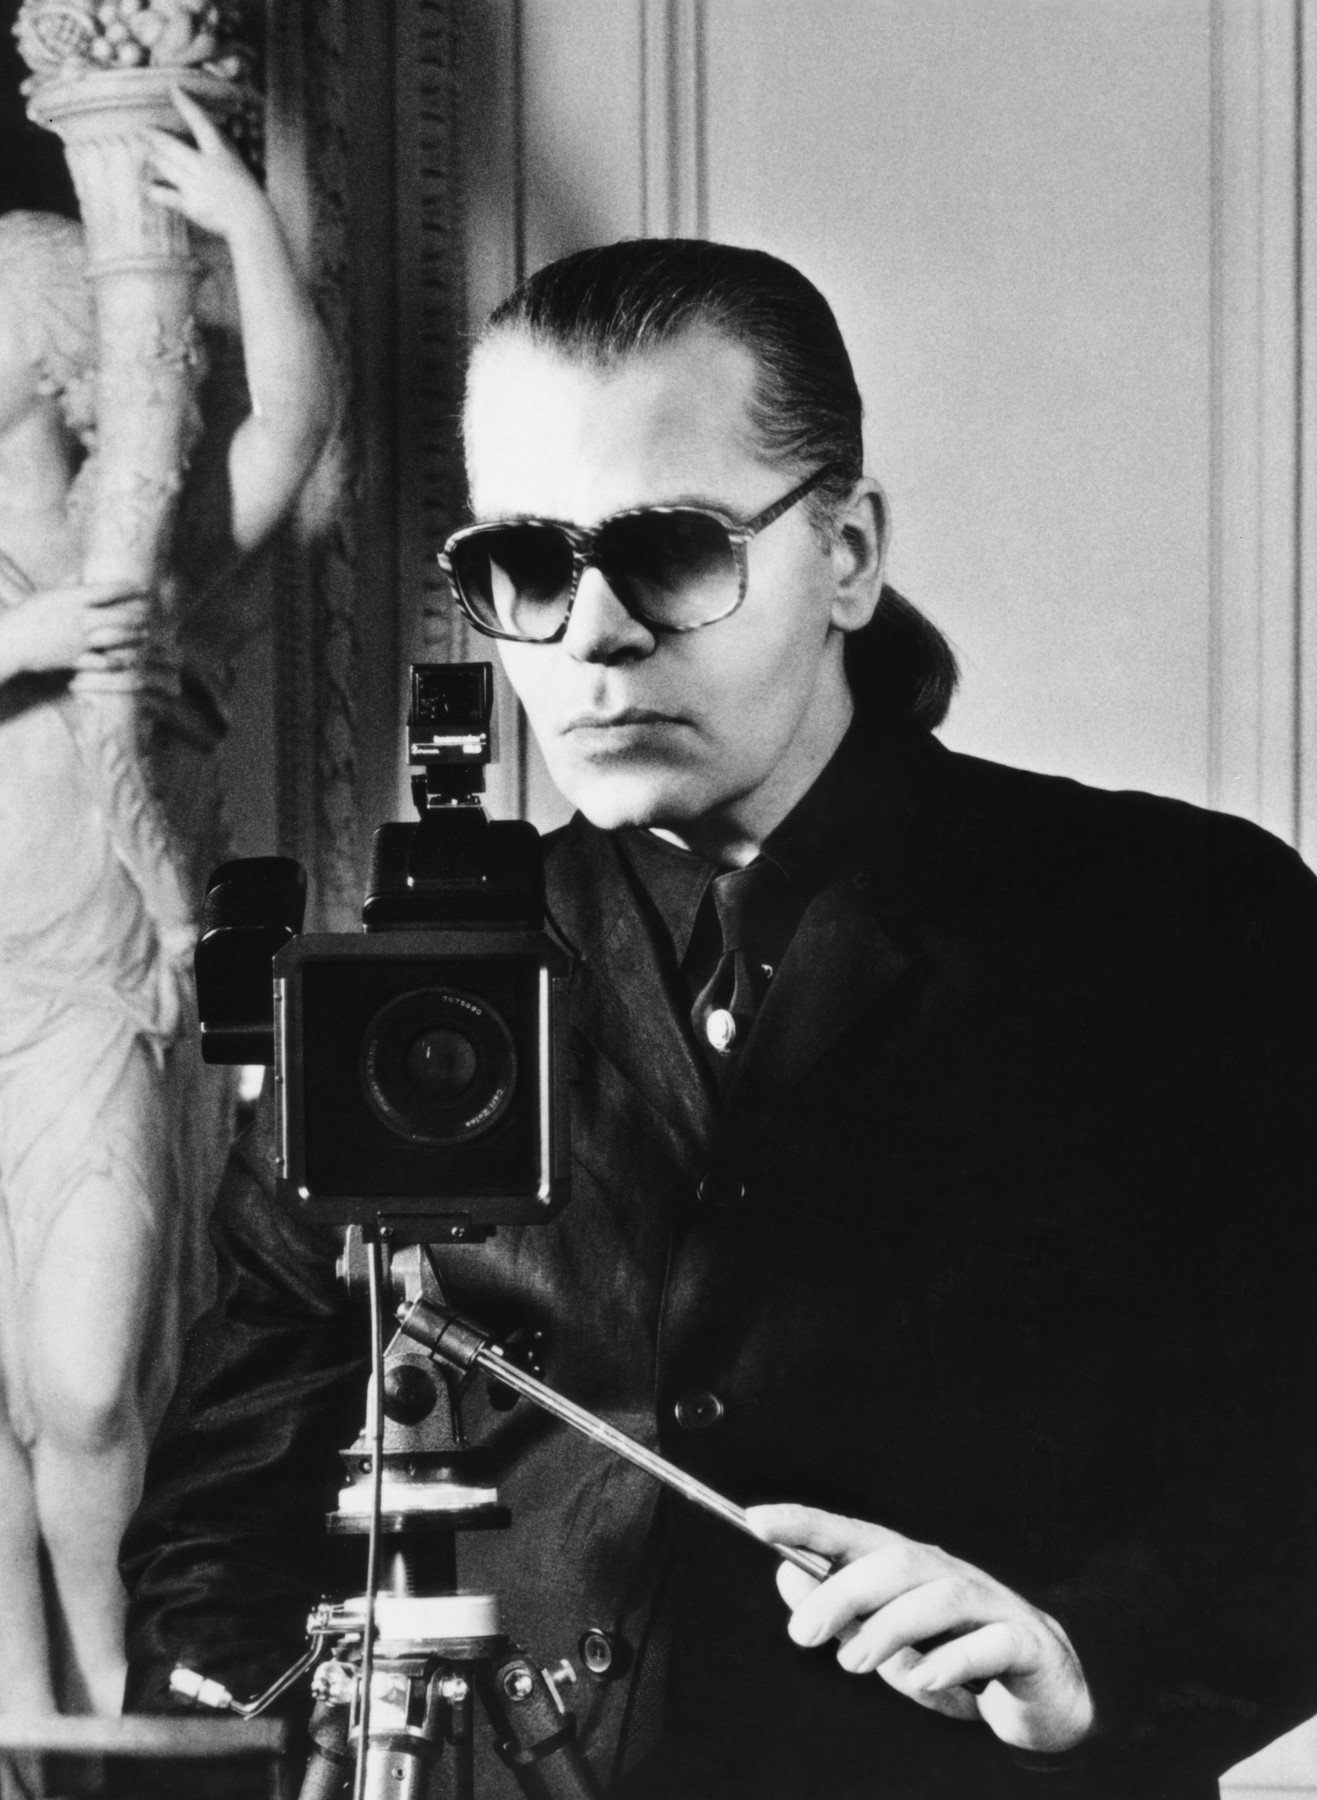 Lagerfeld, Karl Modeschöpfer. geb. Hamburg 10.9.1938.  Porträt (der Künstler beim Fotografieren).  Foto, undat., 1980er Jahre., Image: 147858853, License: Rights-managed, Restrictions: For editorial use only., Model Release: no, Credit line: Profimedia, AKG